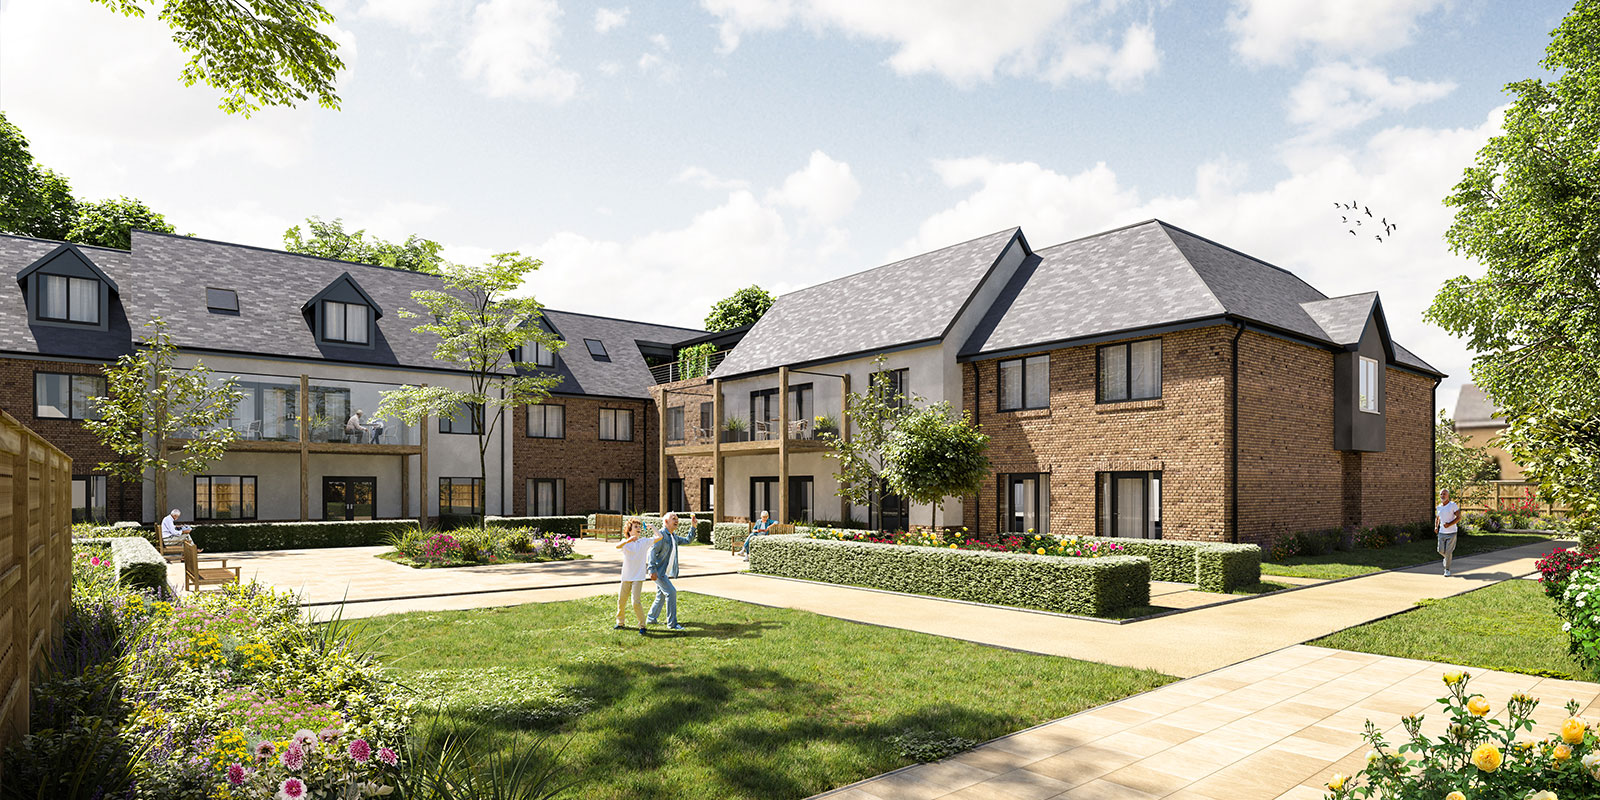 Work commences on new luxury care home in Biggleswade